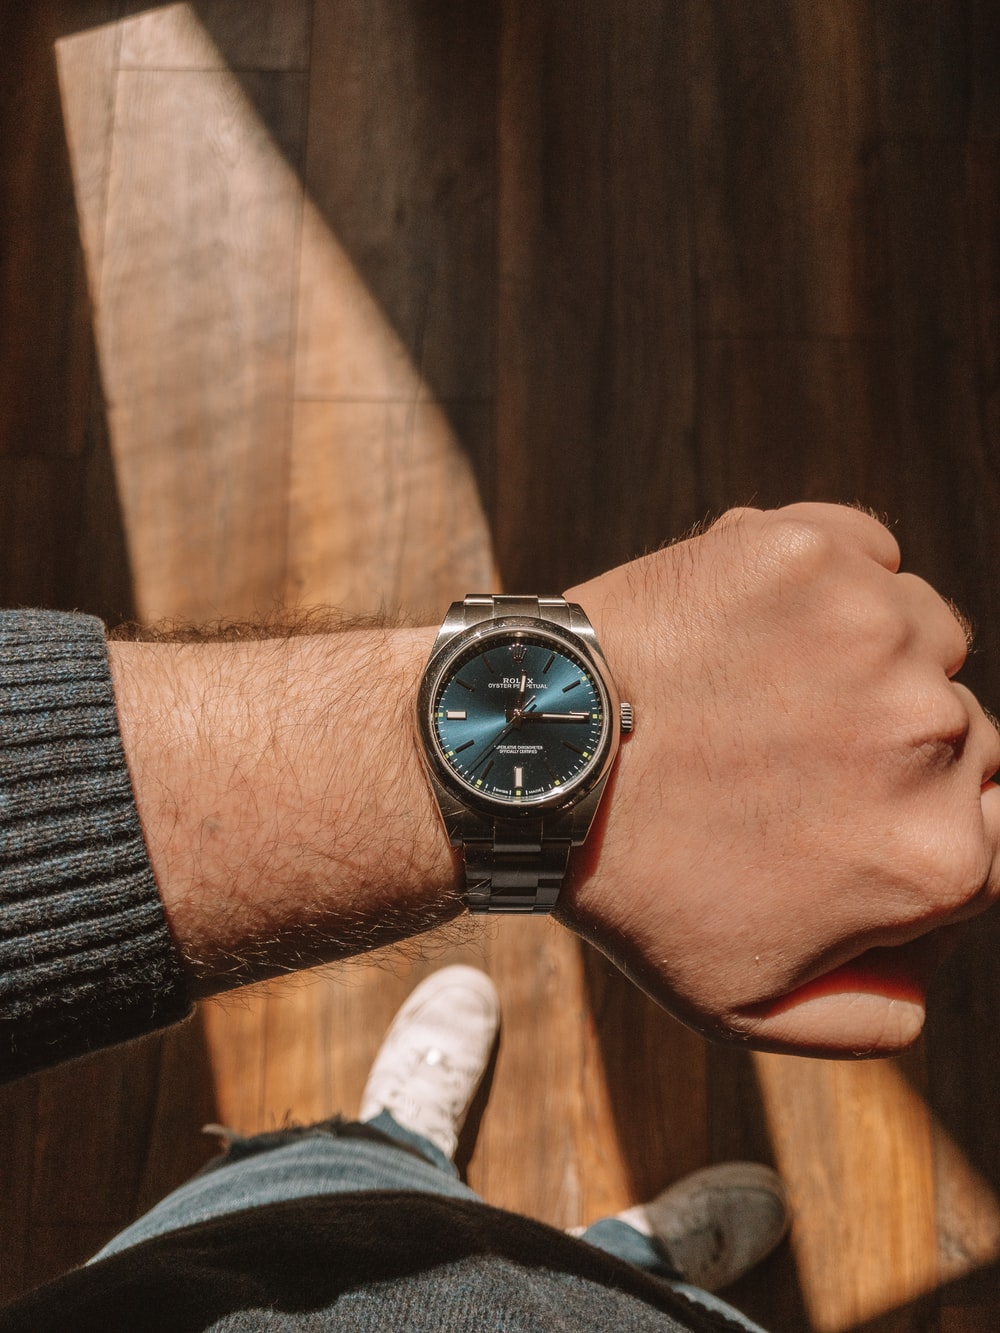 person wearing silver round analog watch